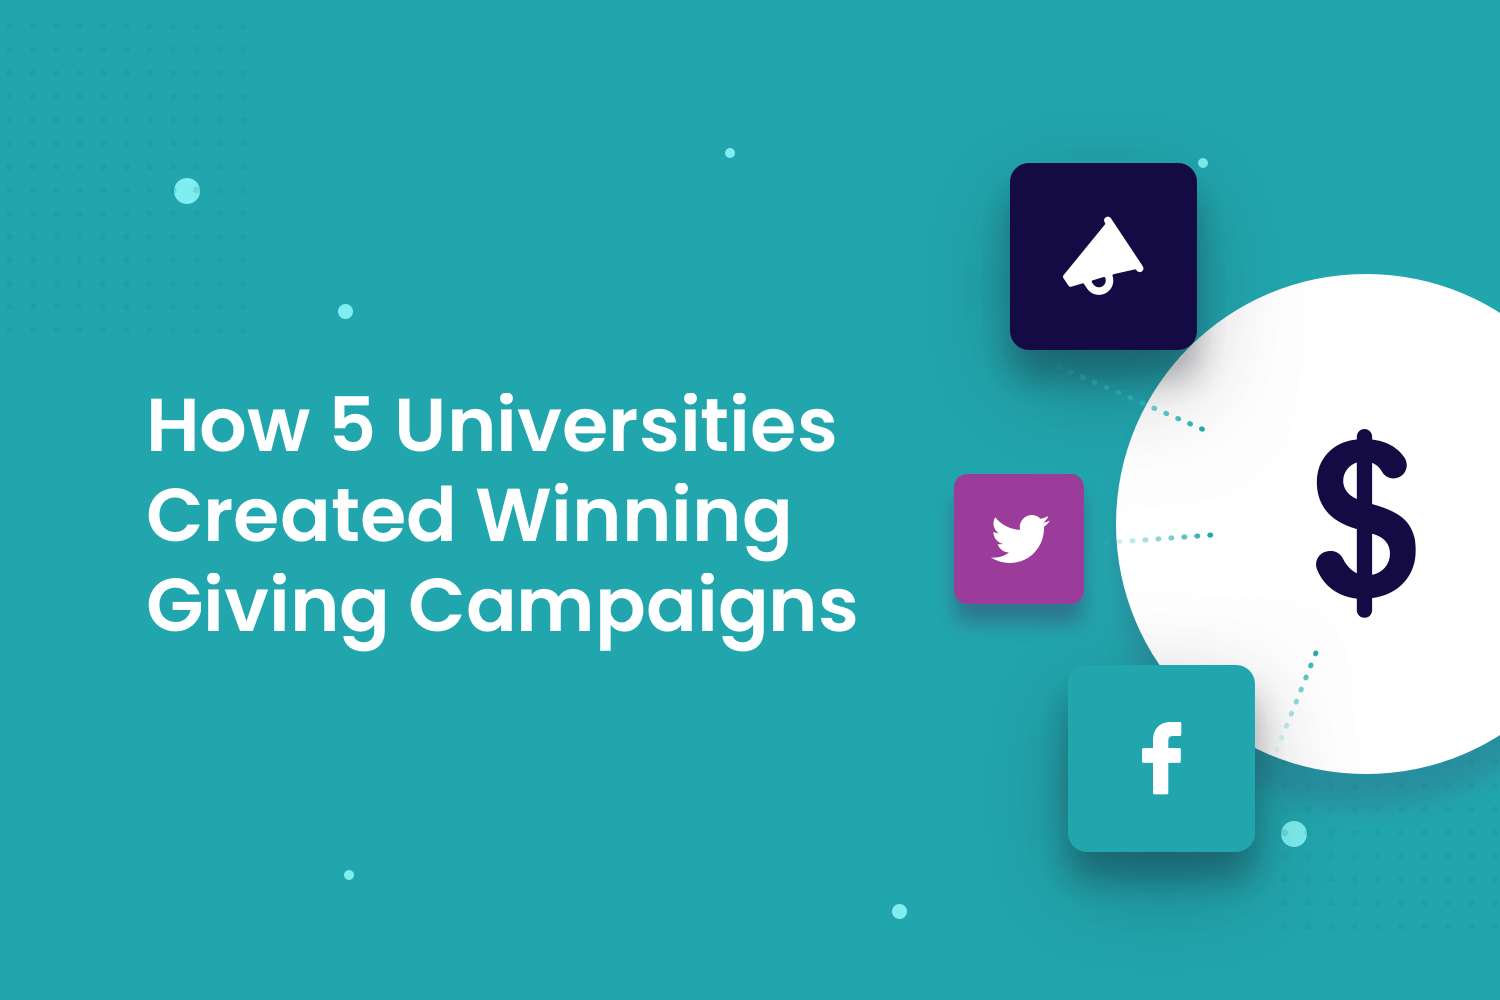 How 5 Universities Created Winning Giving Campaigns